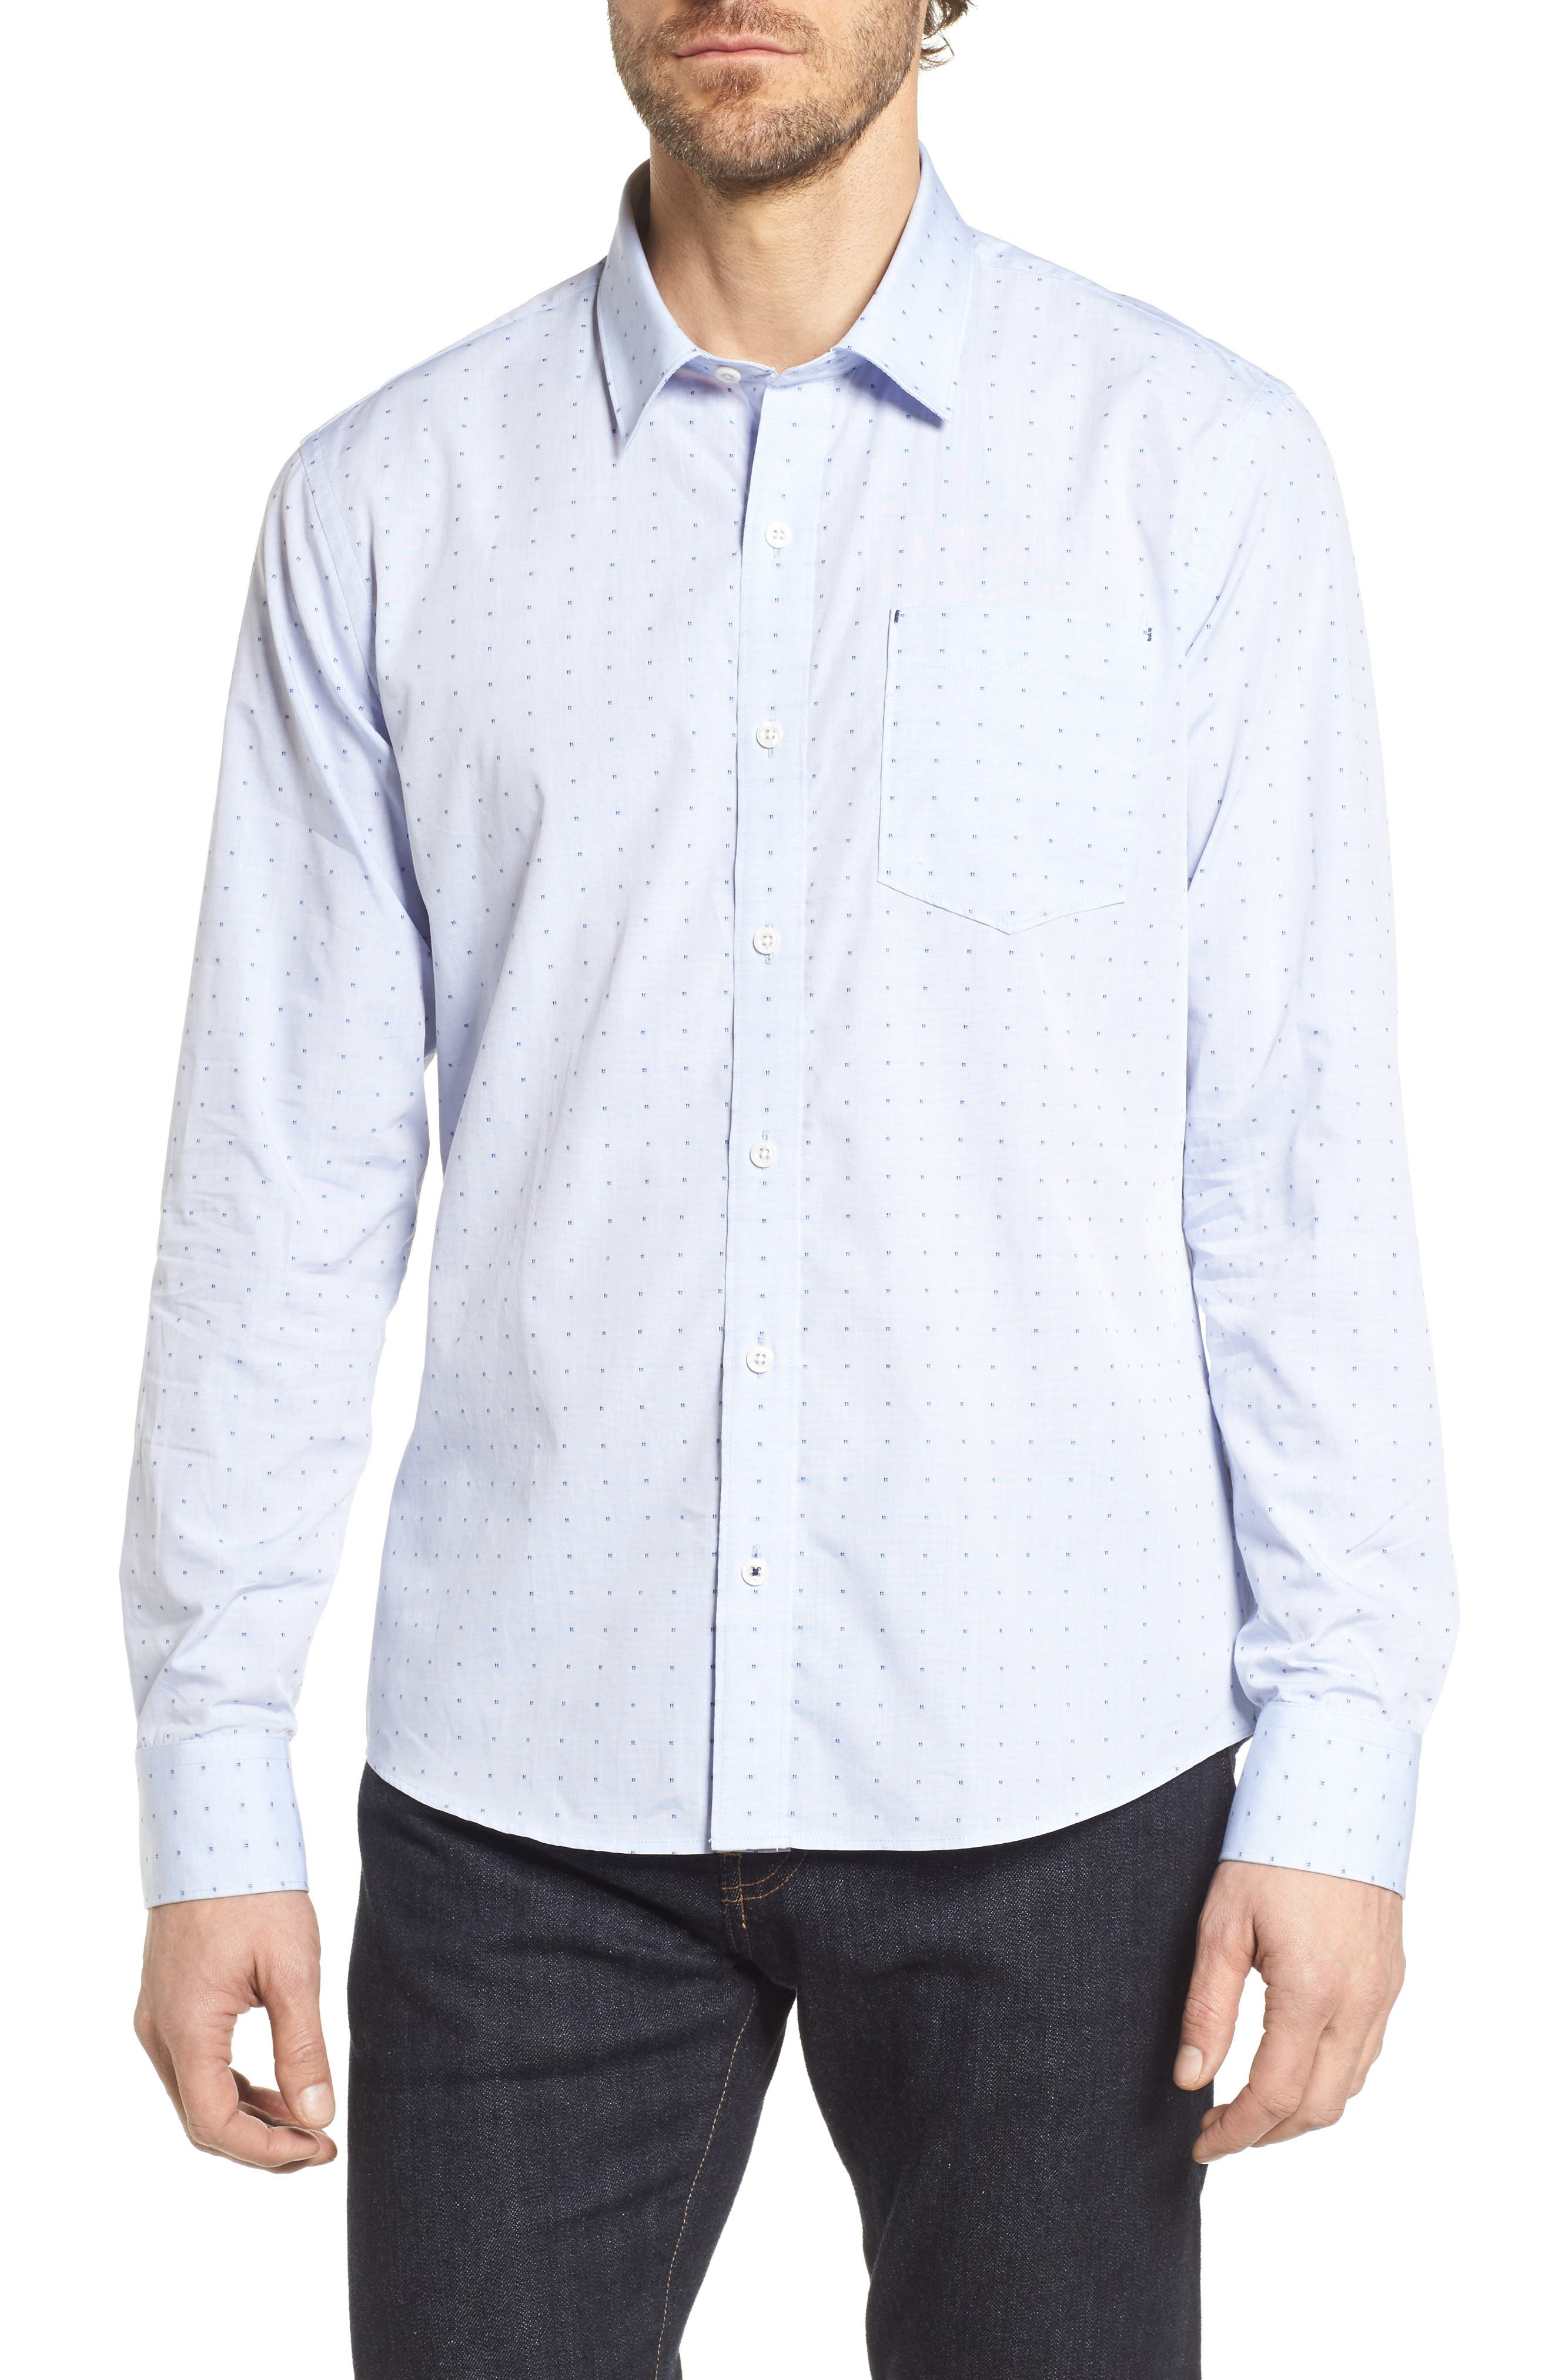 Trust in Me Woven Shirt,                         Main,                         color,